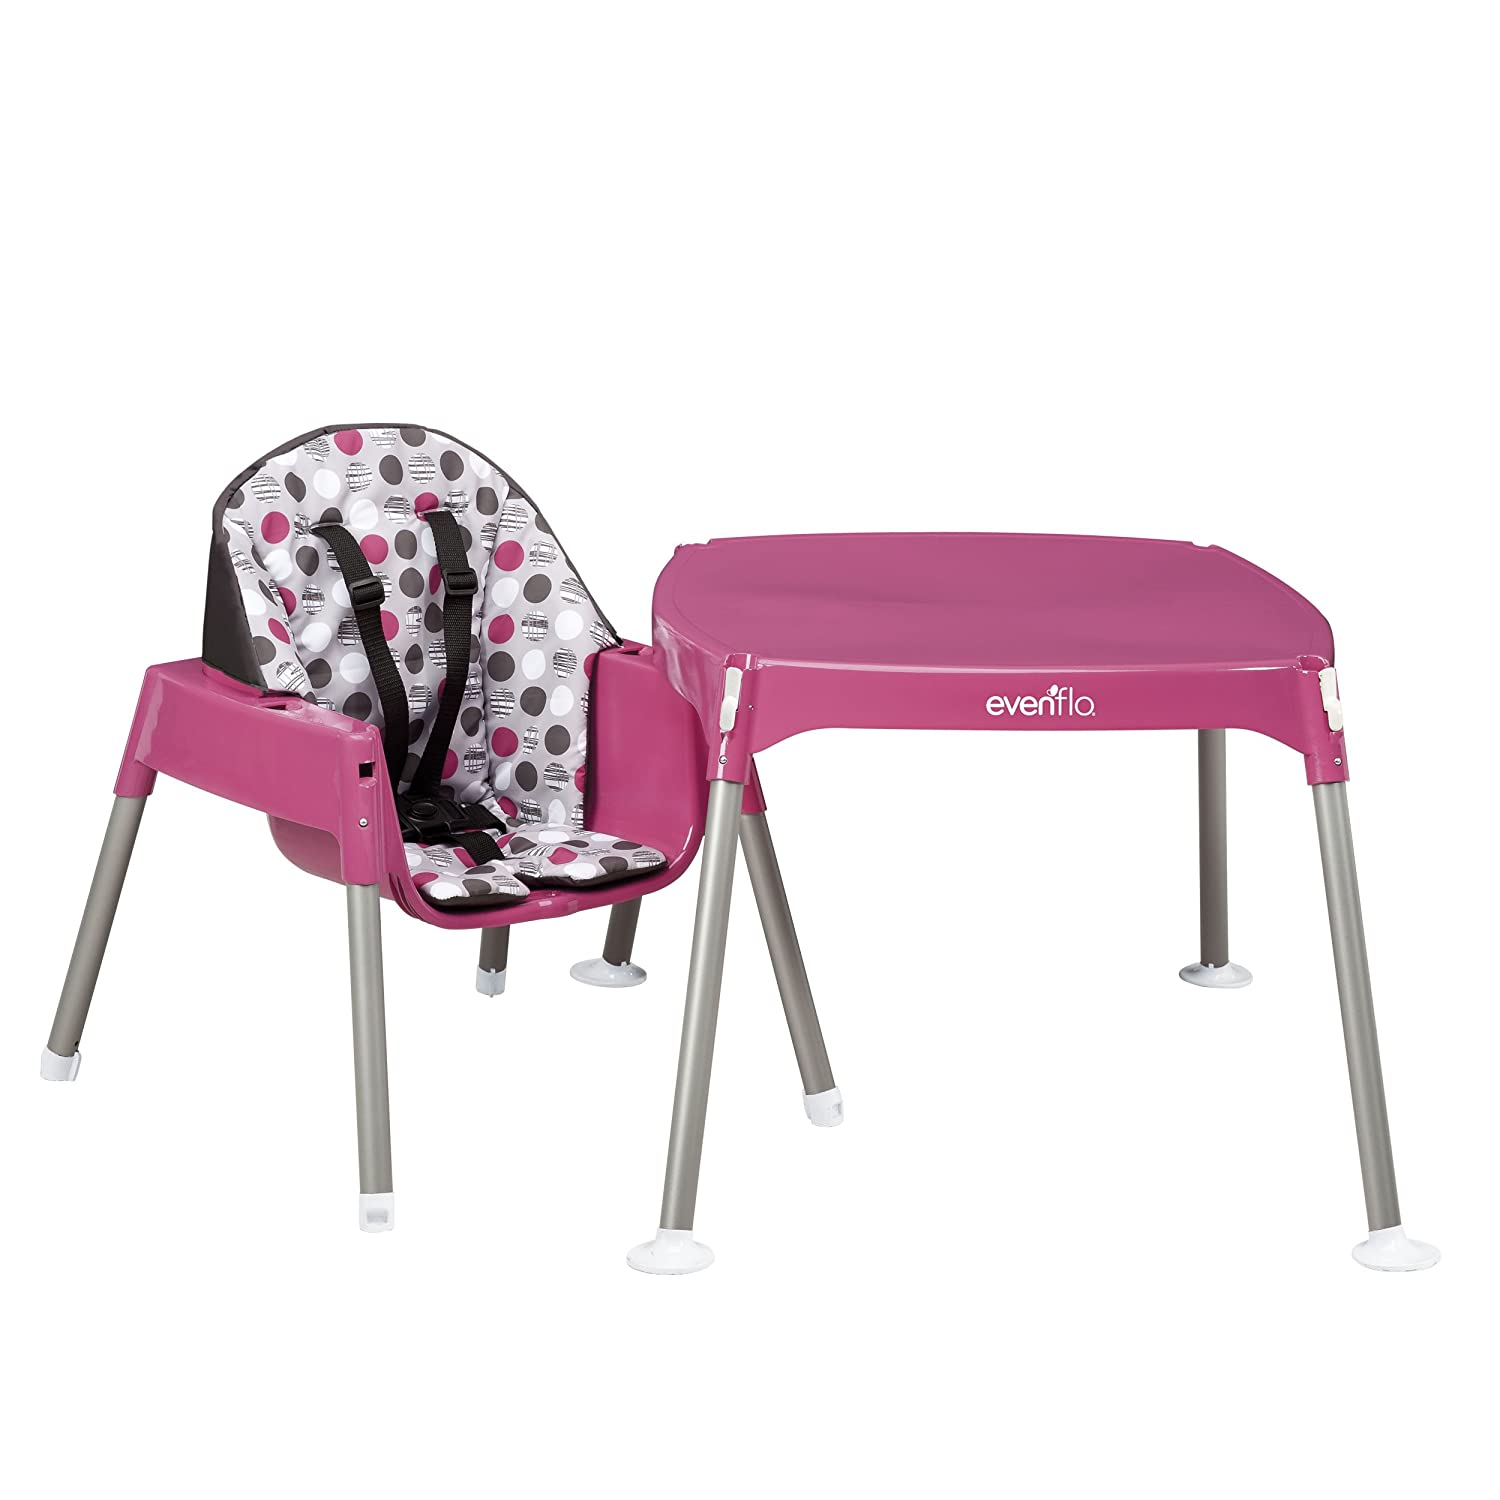 Poppy Evenflo 4-in-1 Eat /& Grow Convertible High Chair